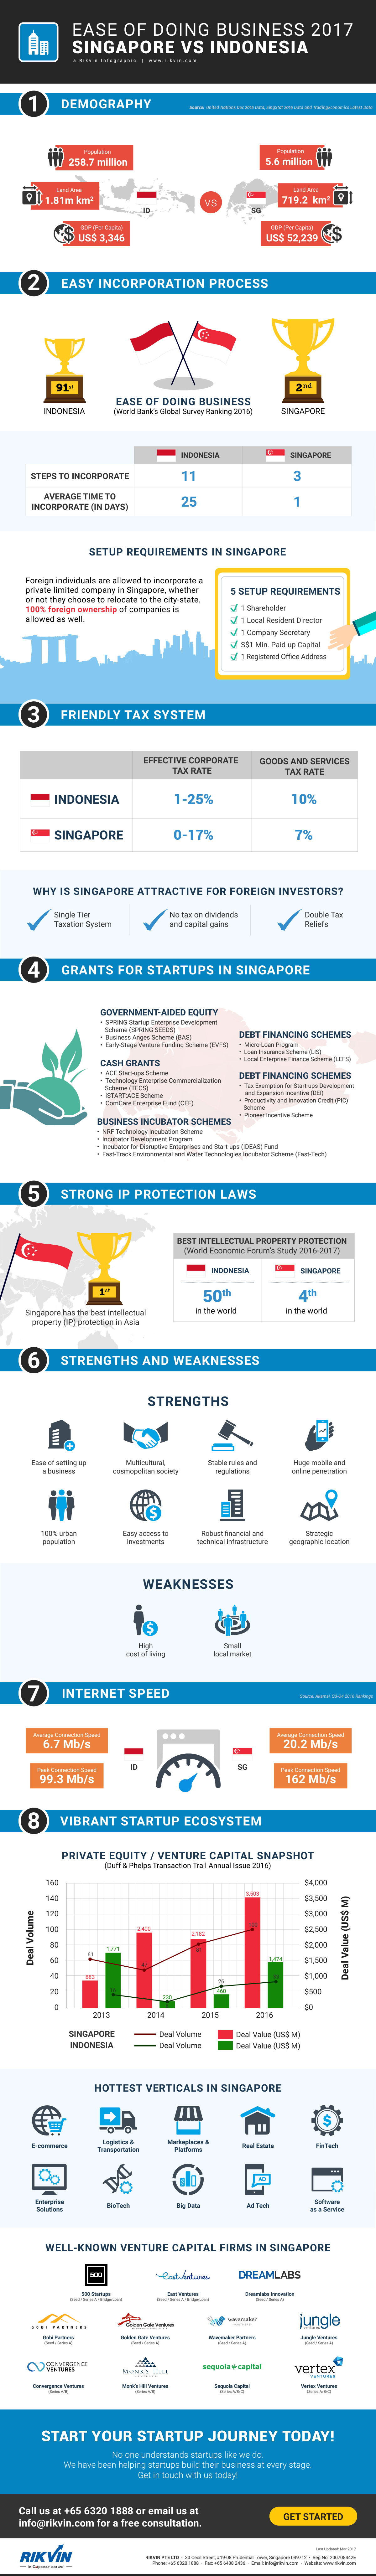 strengths and weakness of m1 singapore